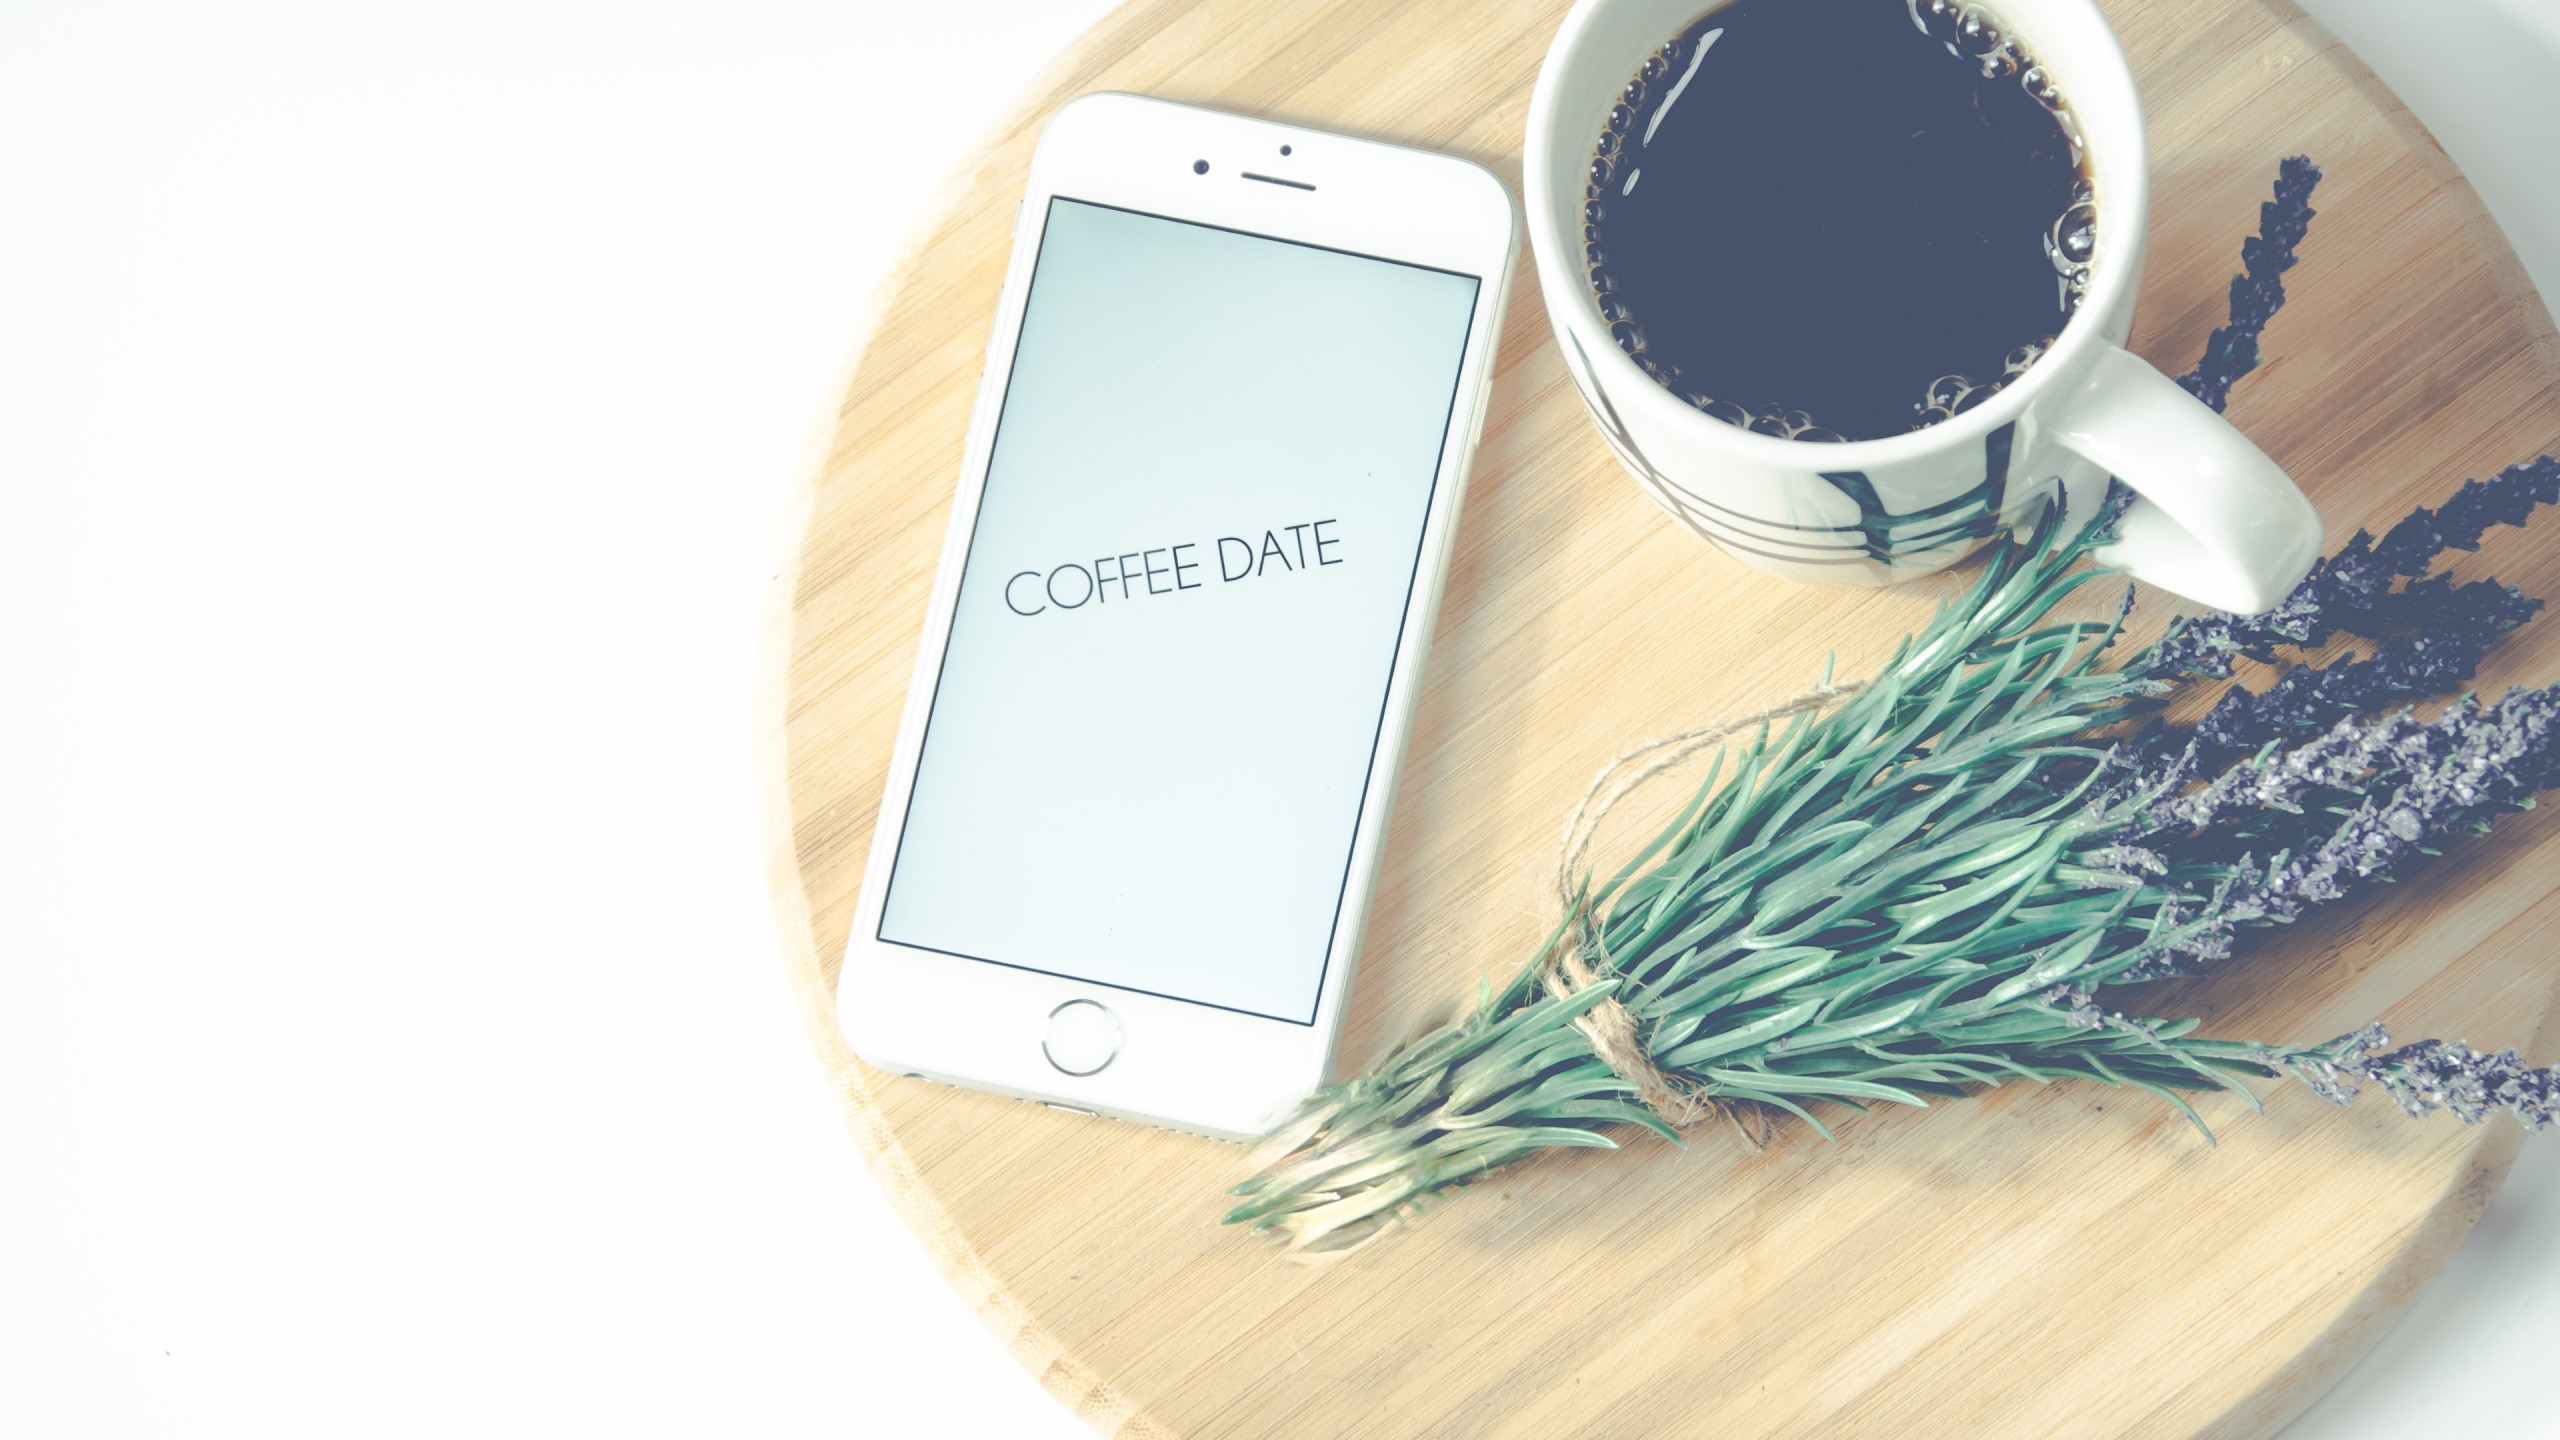 Coffee date | 2560x1440 wallpaper